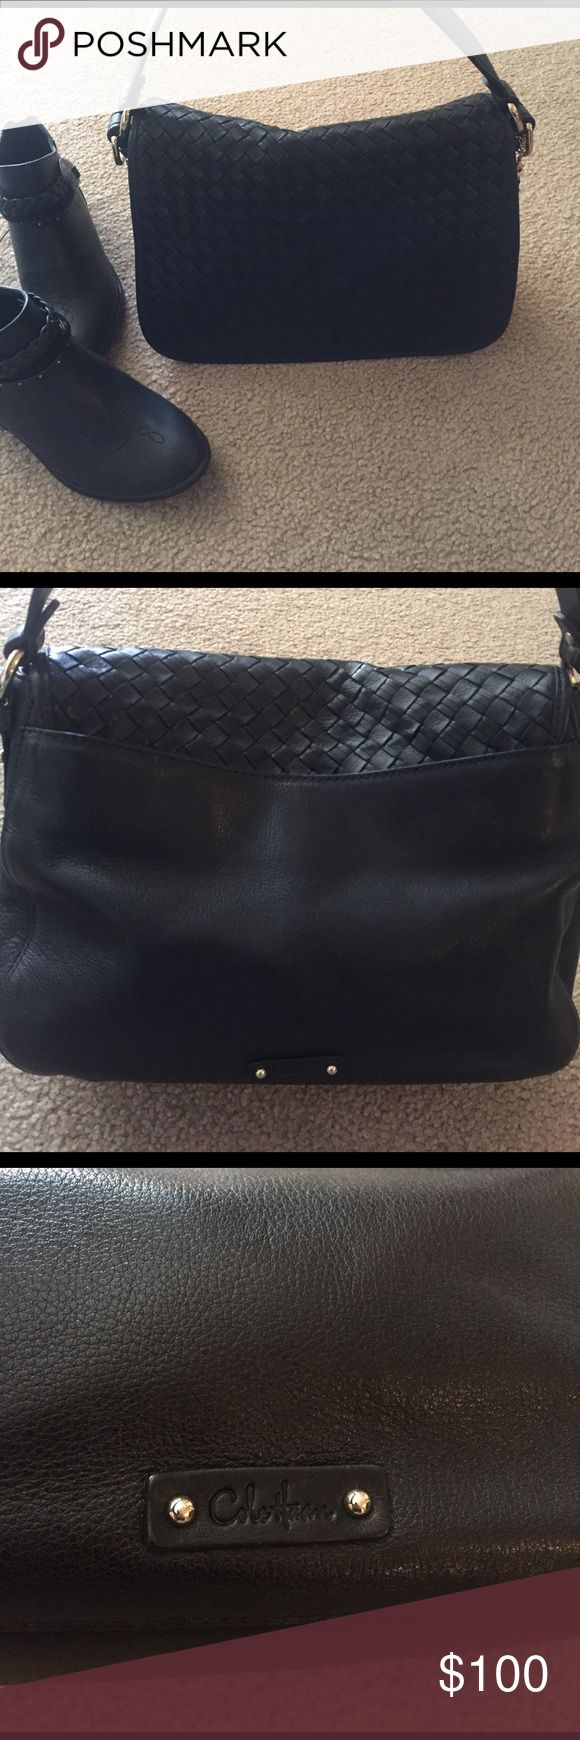 Stunning! Black Leather Cole Haan Purse Excellent condition! Beautifully made! Has ample room for storage (3 inner pockets, 1 with magnetic Closure in back of purse. Great size for every day or a night out! Versatile! Tiny white scuff on bottom, not noticeable. Approximate dimensions: 12.5 X 9 x 5 Cole Haan Bags